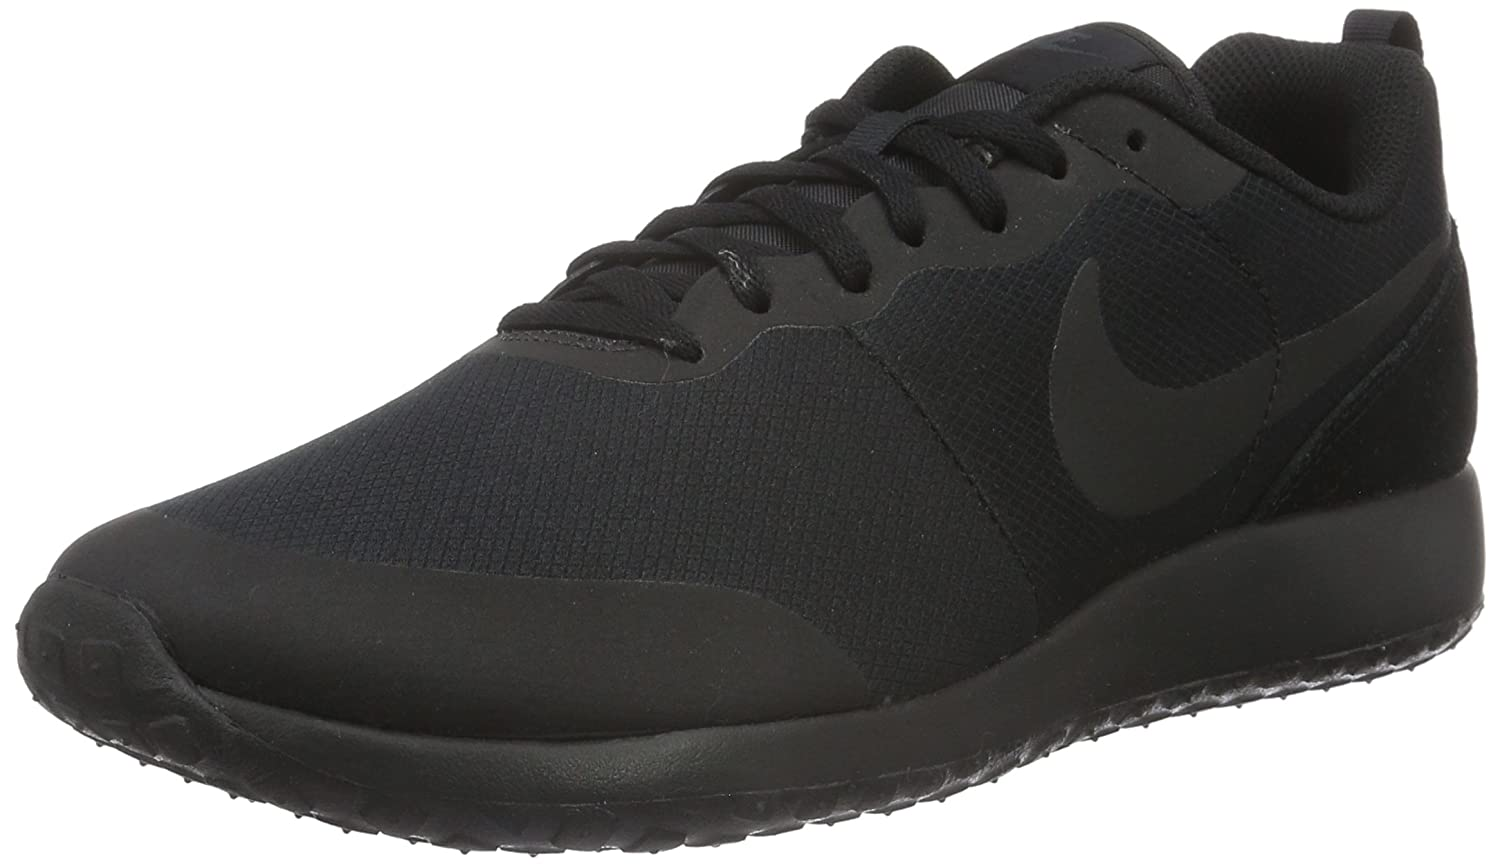 Nike Herren Mens Elite Shinsen Shoe Low-Top  44 EU|Schwarz (001 Black/Black-anthracite)